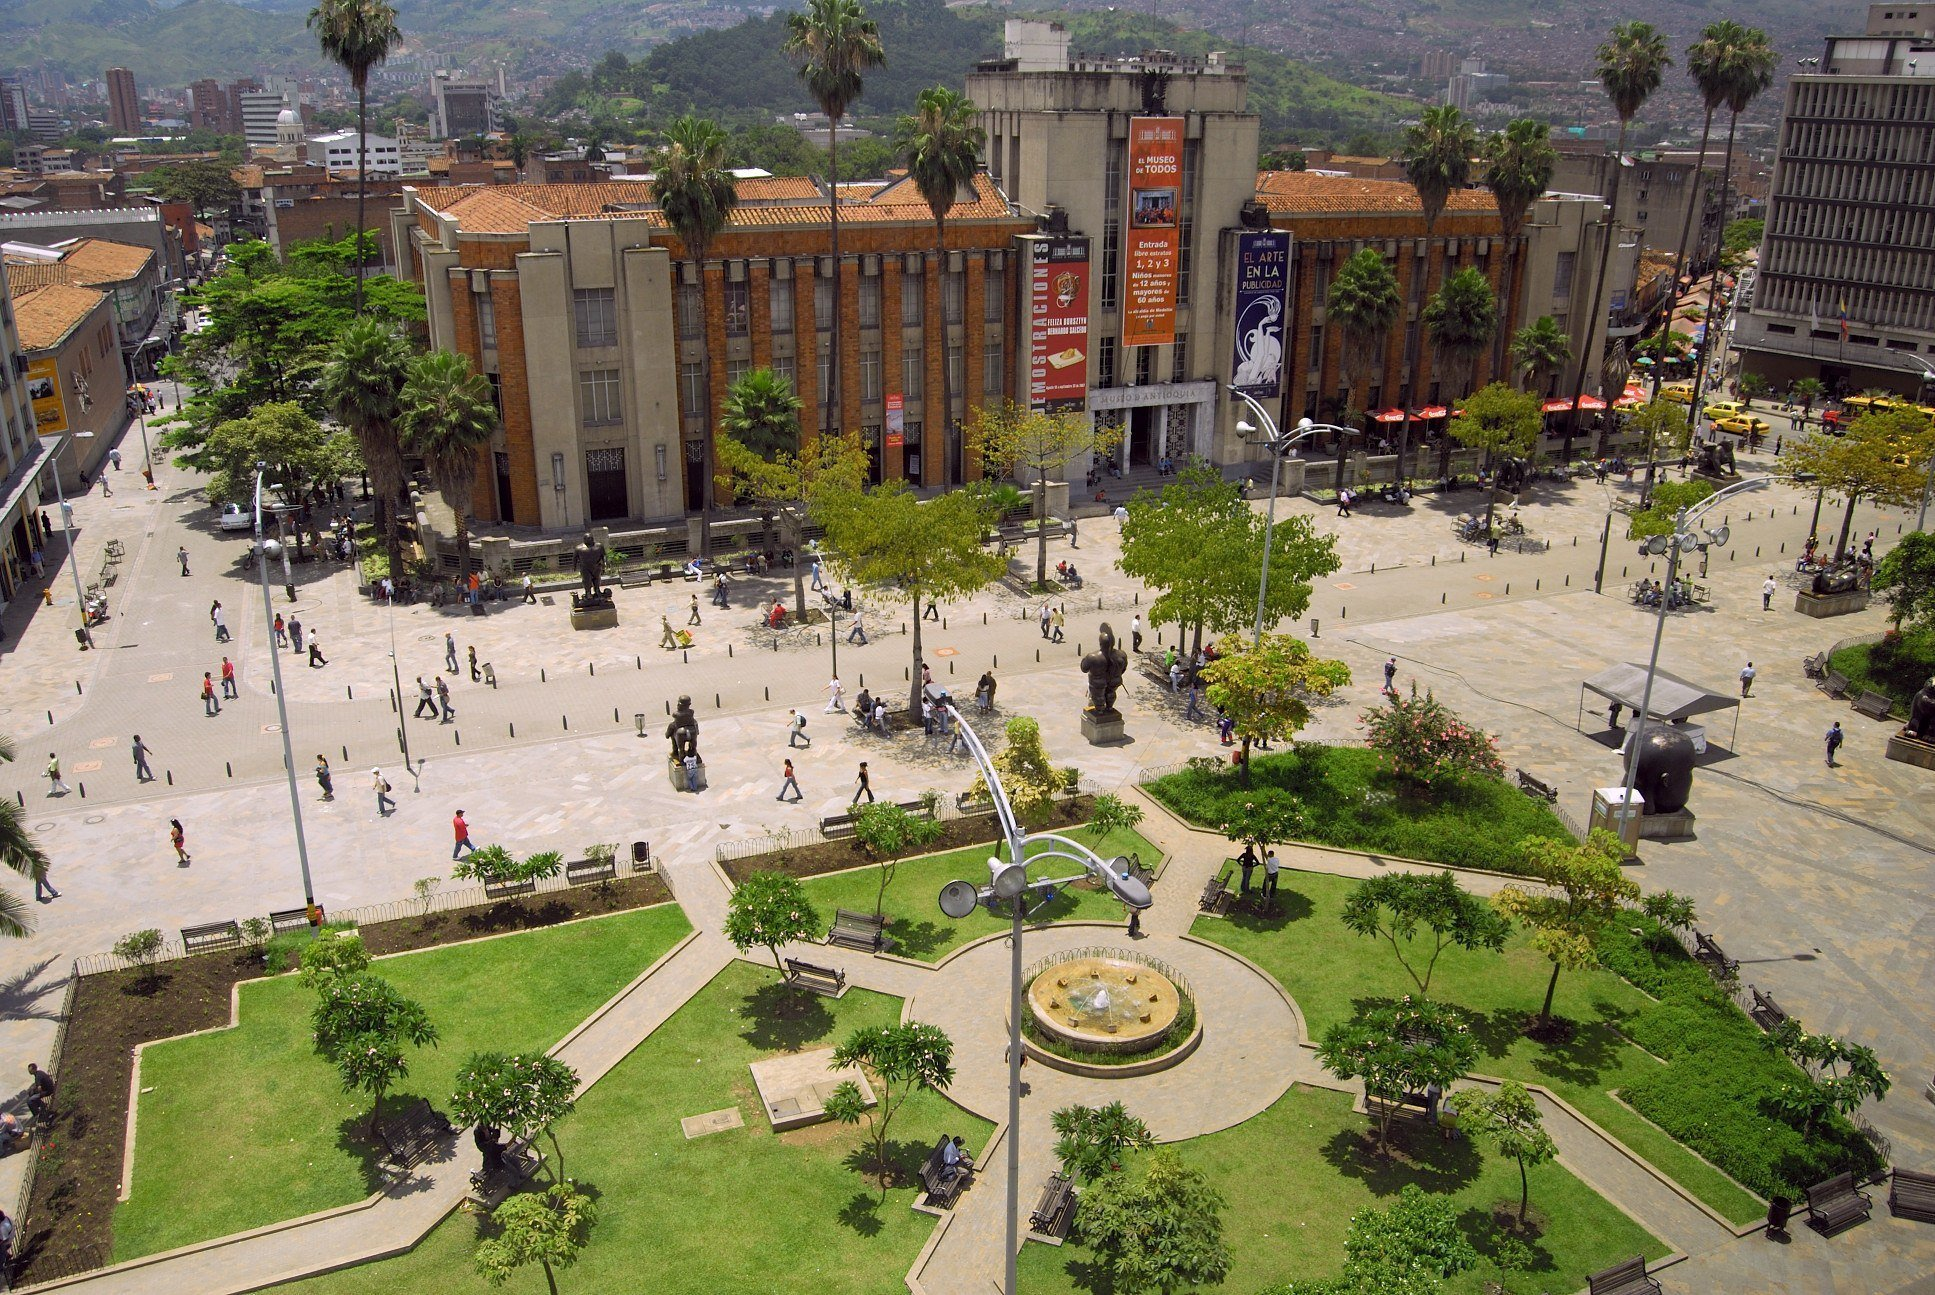 The Museo de Antioquia is free during the Christmas season in Medellín, Colombia.